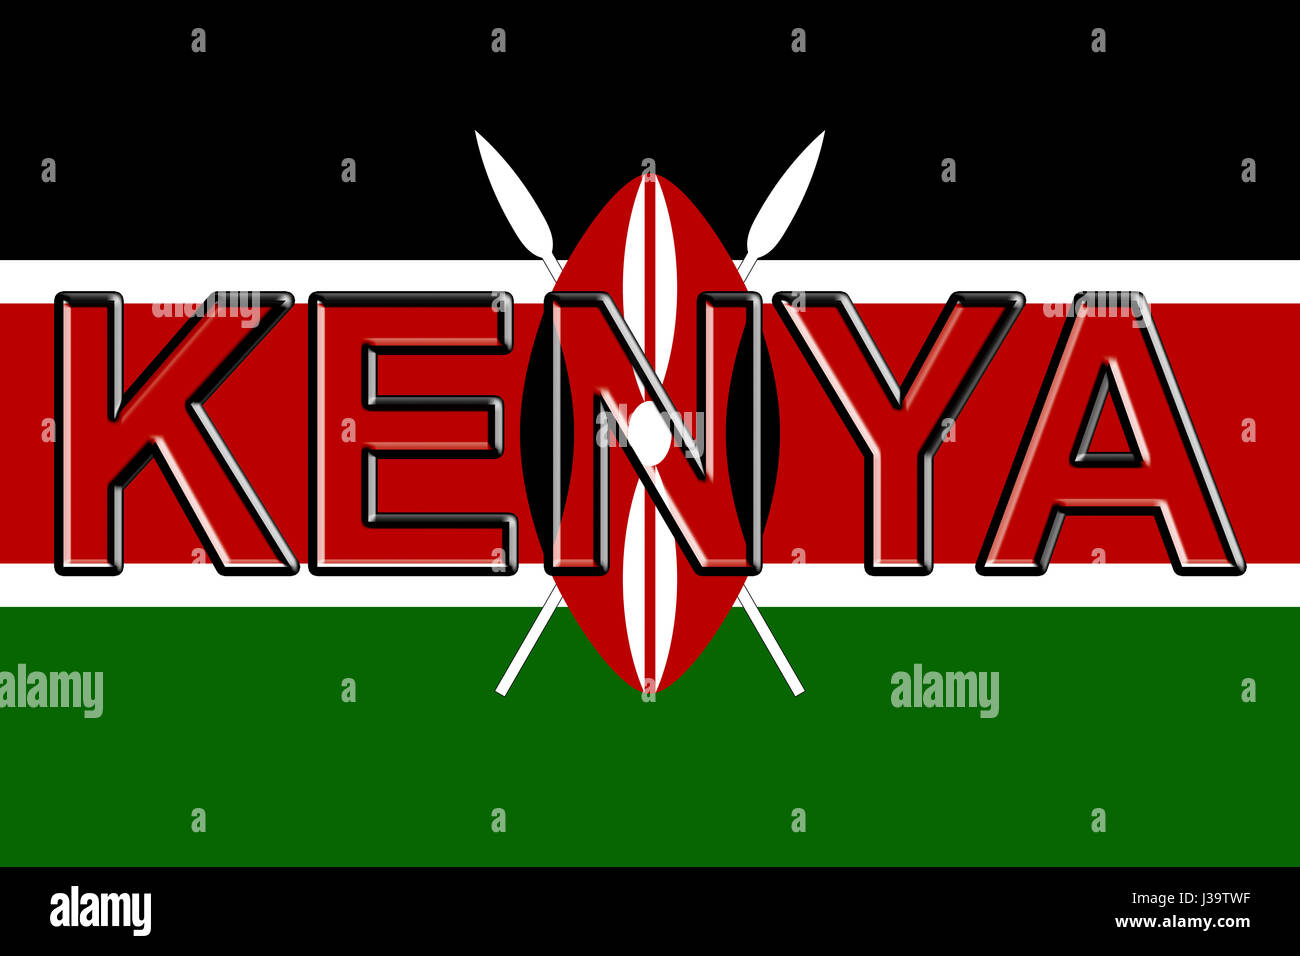 Illustration of the national flag of Kenya  with the country written on the flag. Stock Photo